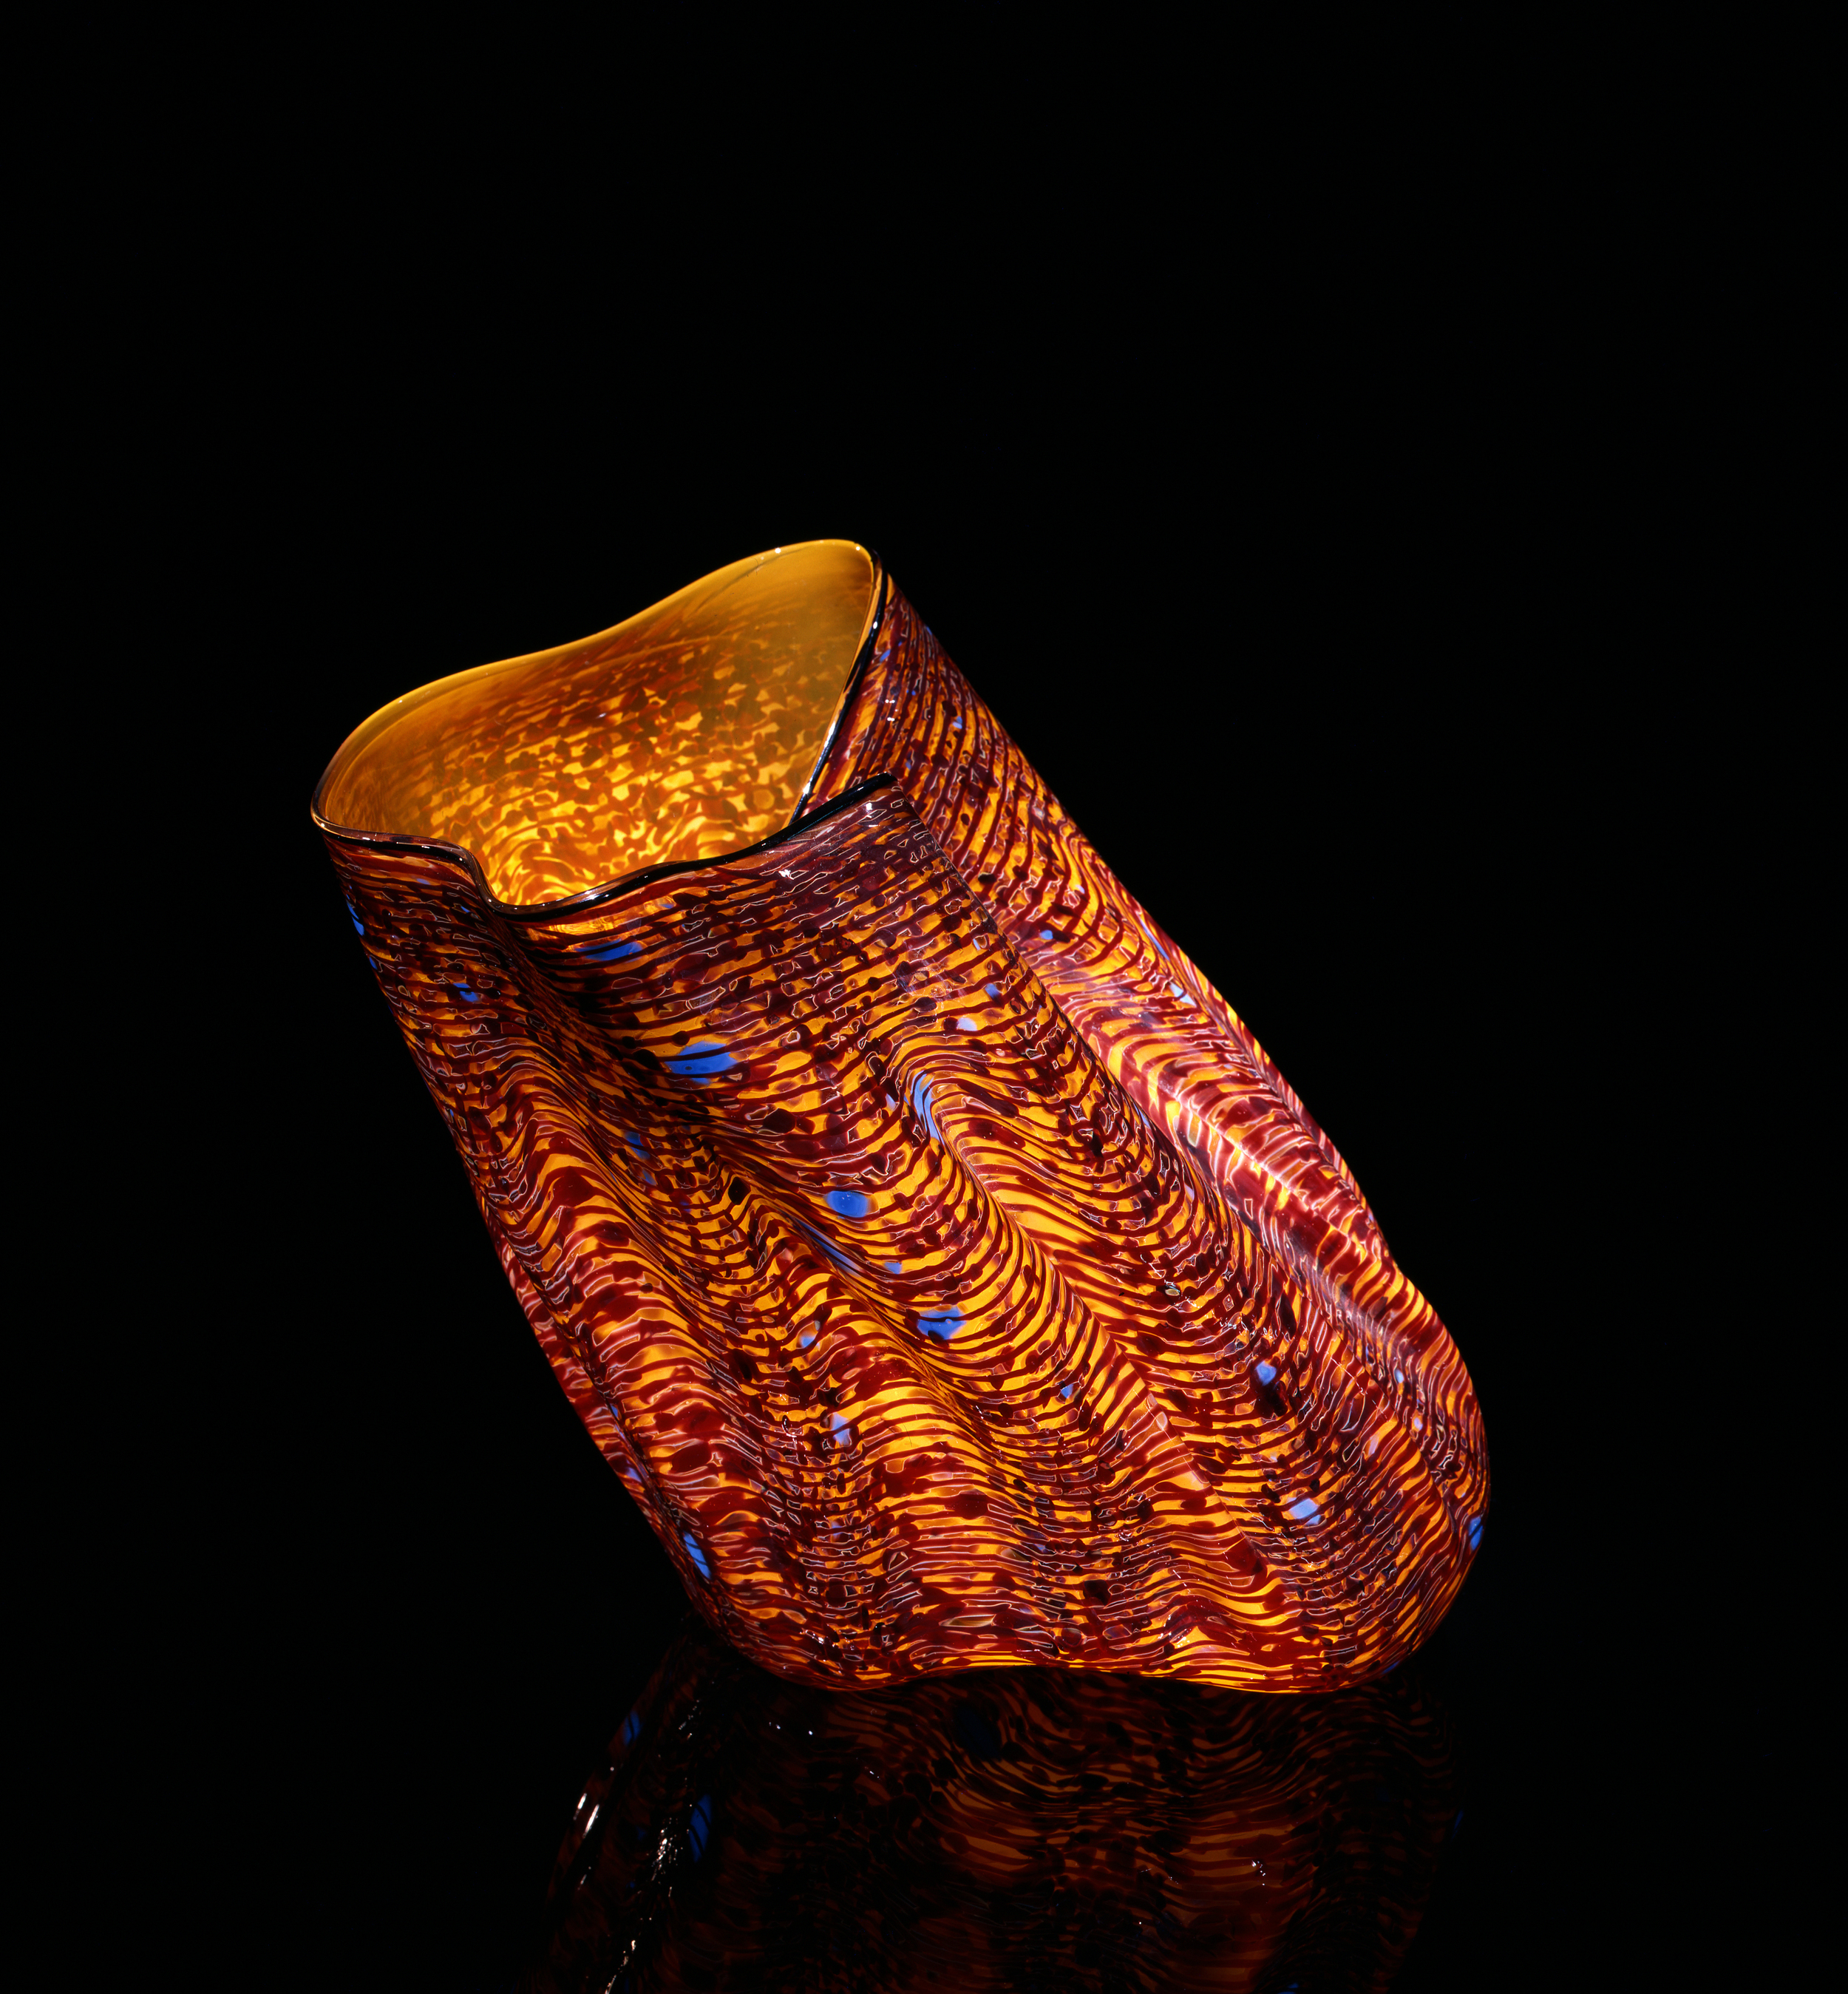 Dale Chihuly, Delta Yellow Macchia with Cassel Lip Wrap (1981, glass, 10 x 10 x 10inches), DC.57